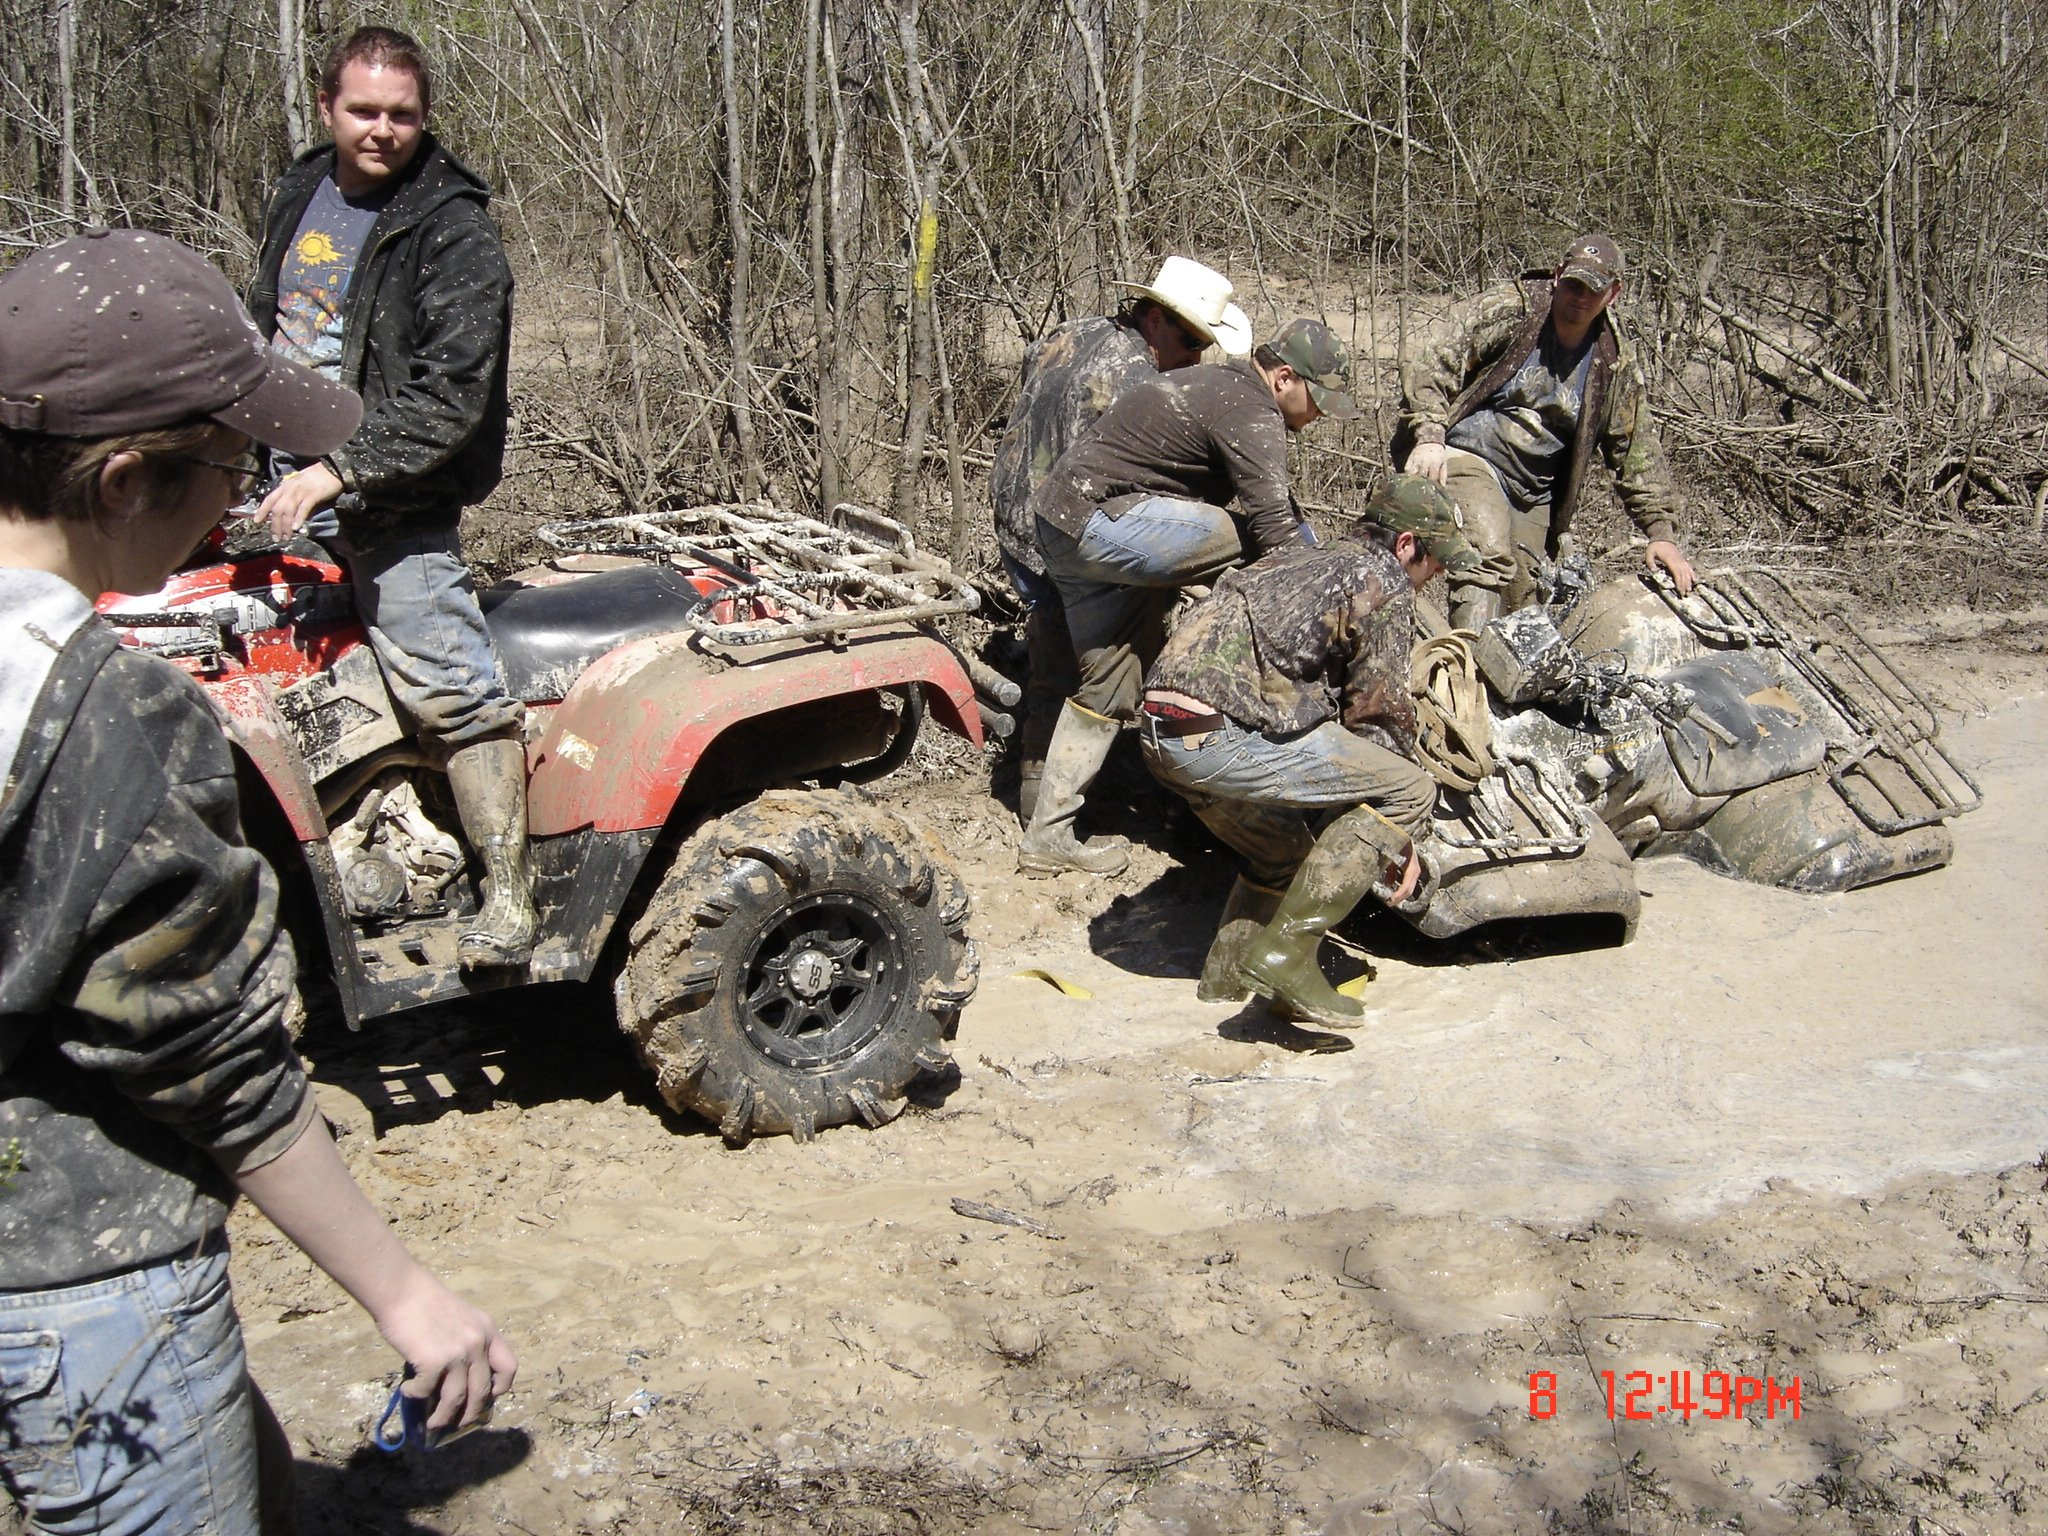 Mud/Trail Ride Pics and Videos-dsc03506.jpg